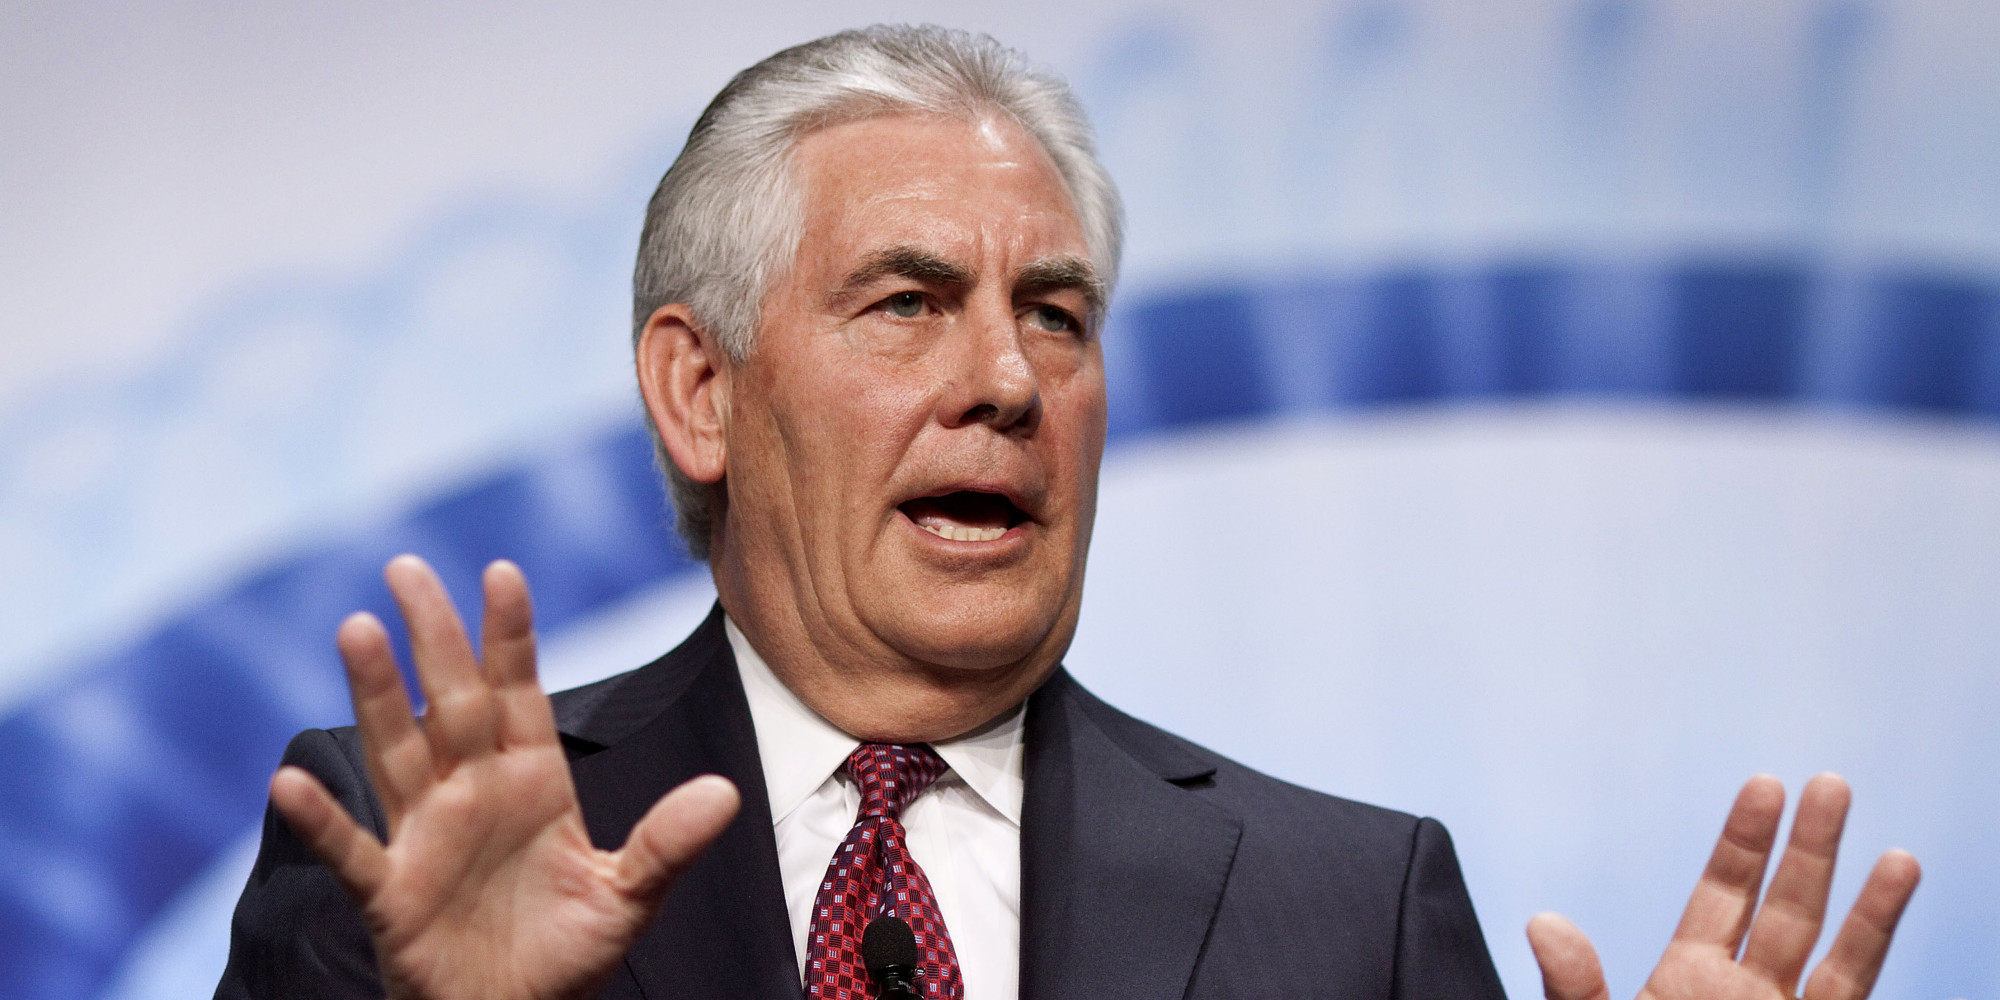 Rex Tillerson, chief executive officer of Exxon Mobile Corp., speaks at the 2012 CERAWEEK conference in Houston, Texas, U.S., on Friday, March 9, 2012. Exxon Mobil Corp. is moving toward the conclusion of an agreement to drill in the Russian Arctic, Tillerson said. Photographer: F. Carter Smith/Bloomberg via Getty Images